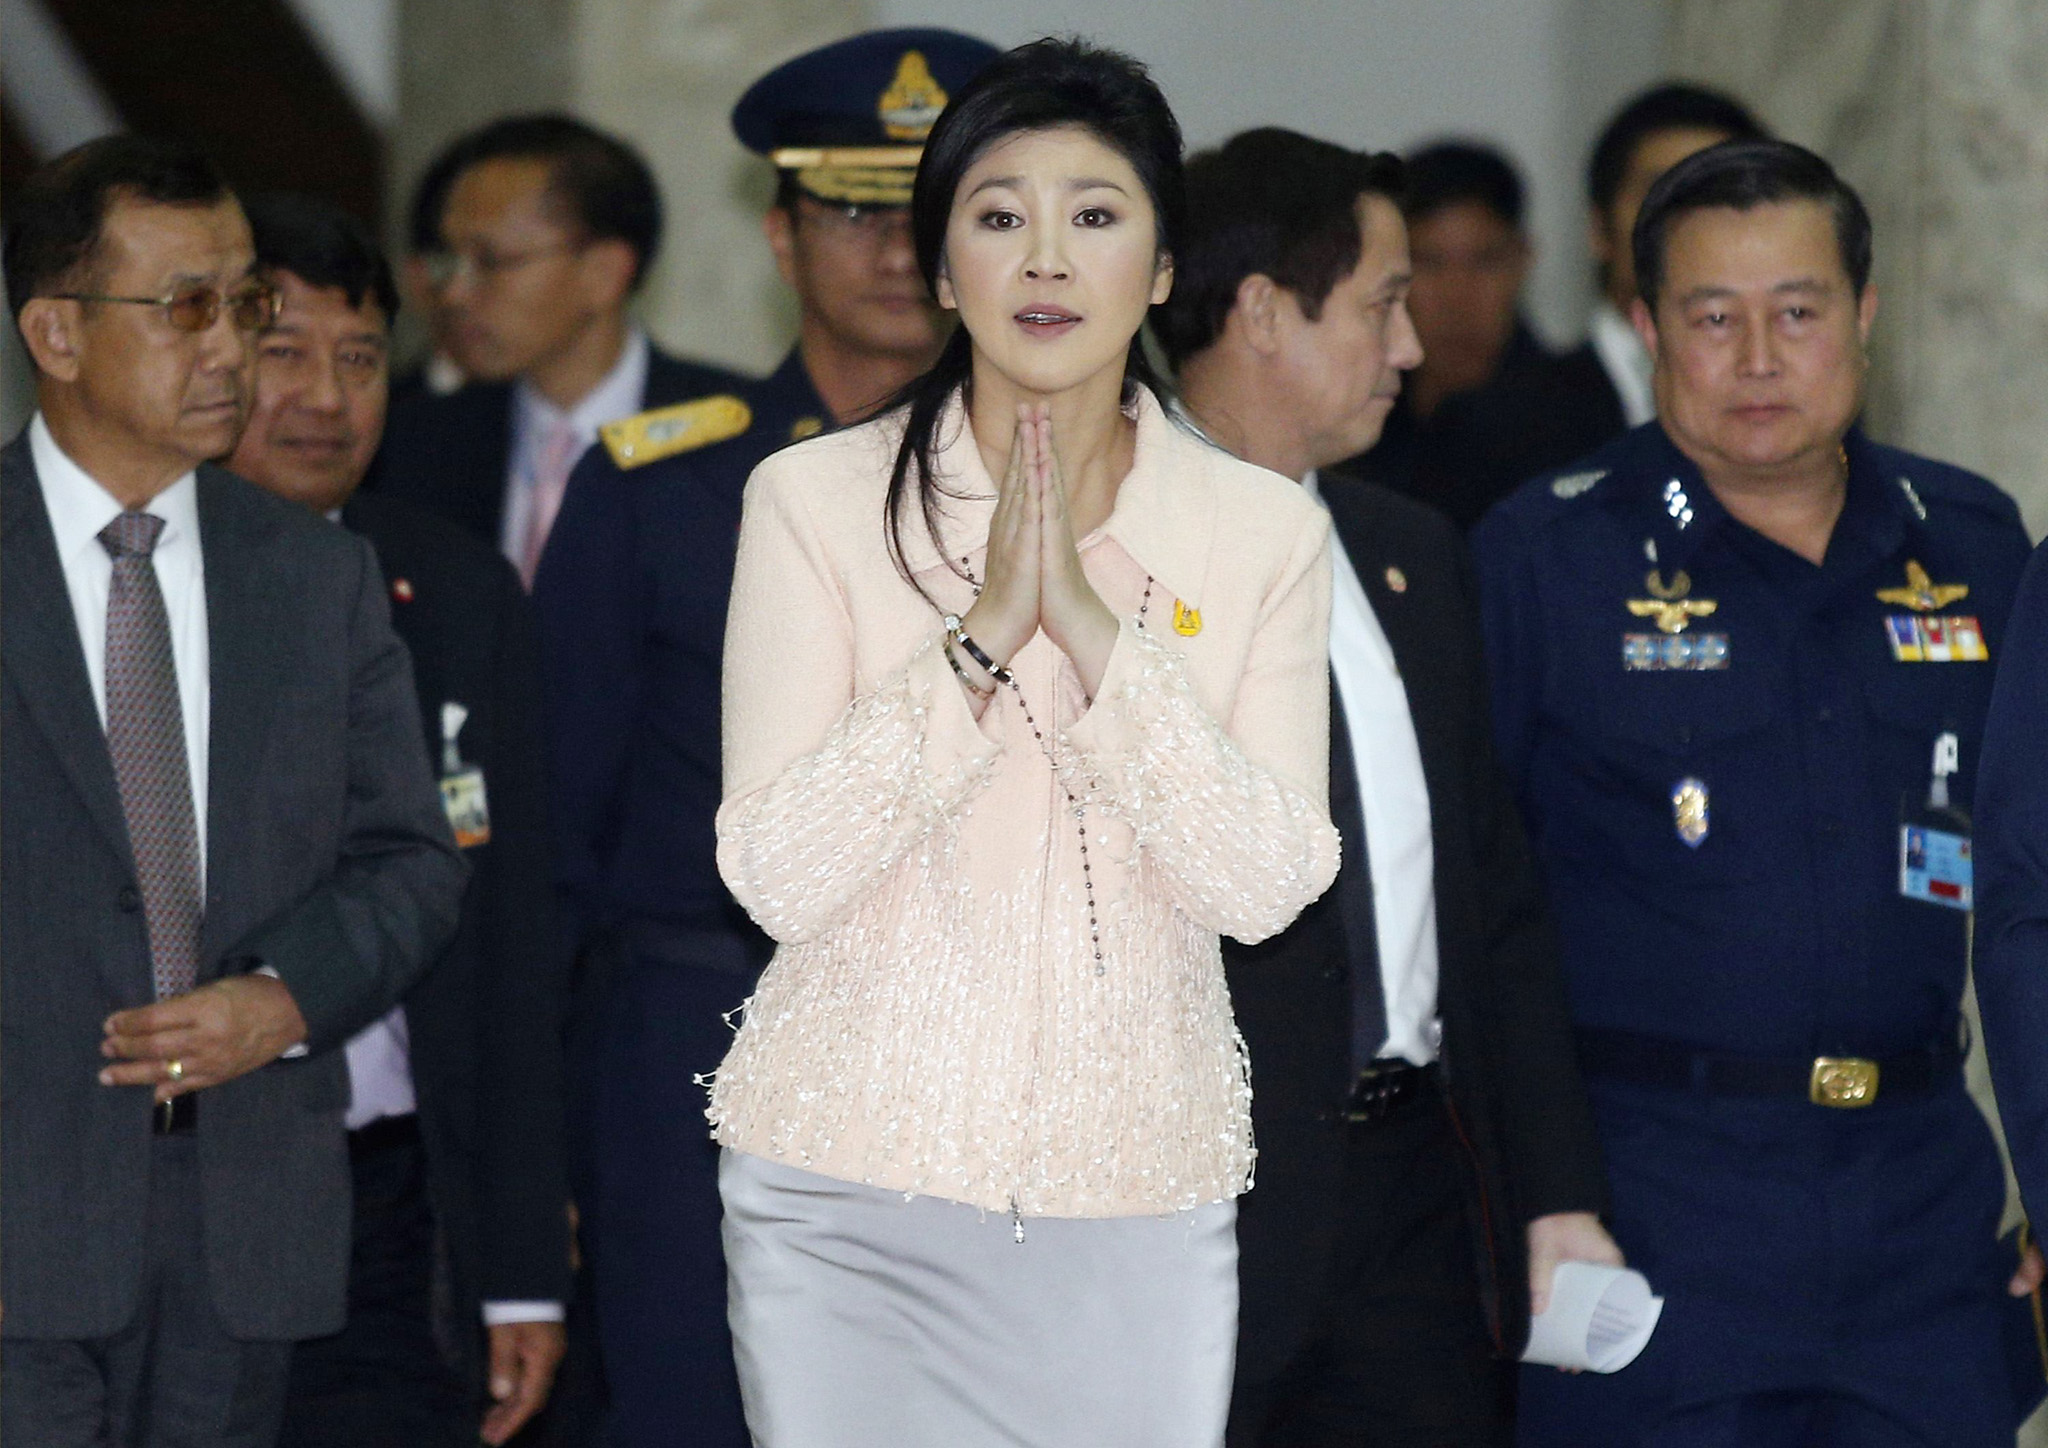 "REUTERS PICTURE HIGHLIGHT...ATTENTION EDITORS - REUTERS PICTURE HIGHLIGHT TRANSMITTED BY 1359 GMT ON JANUARY 21, 2014    PGB02RRR  Thailand's Prime Minister Yingluck Shinawatra gestures while speaking to reporters following following the declaration of a state of emergency in Bangkok.  REUTERS/Athit Perawongmetha      REUTERS NEWS PICTURES HAS NOW MADE IT EASIER TO FIND THE BEST PHOTOS FROM THE MOST IMPORTANT STORIES AND TOP STANDALONES EACH DAY. Search for ""TPX"" in the IPTC Supplemental Category field or ""IMAGES OF THE DAY"" in the Caption field and you will find a selection of 80-100 of our daily Top Pictures."